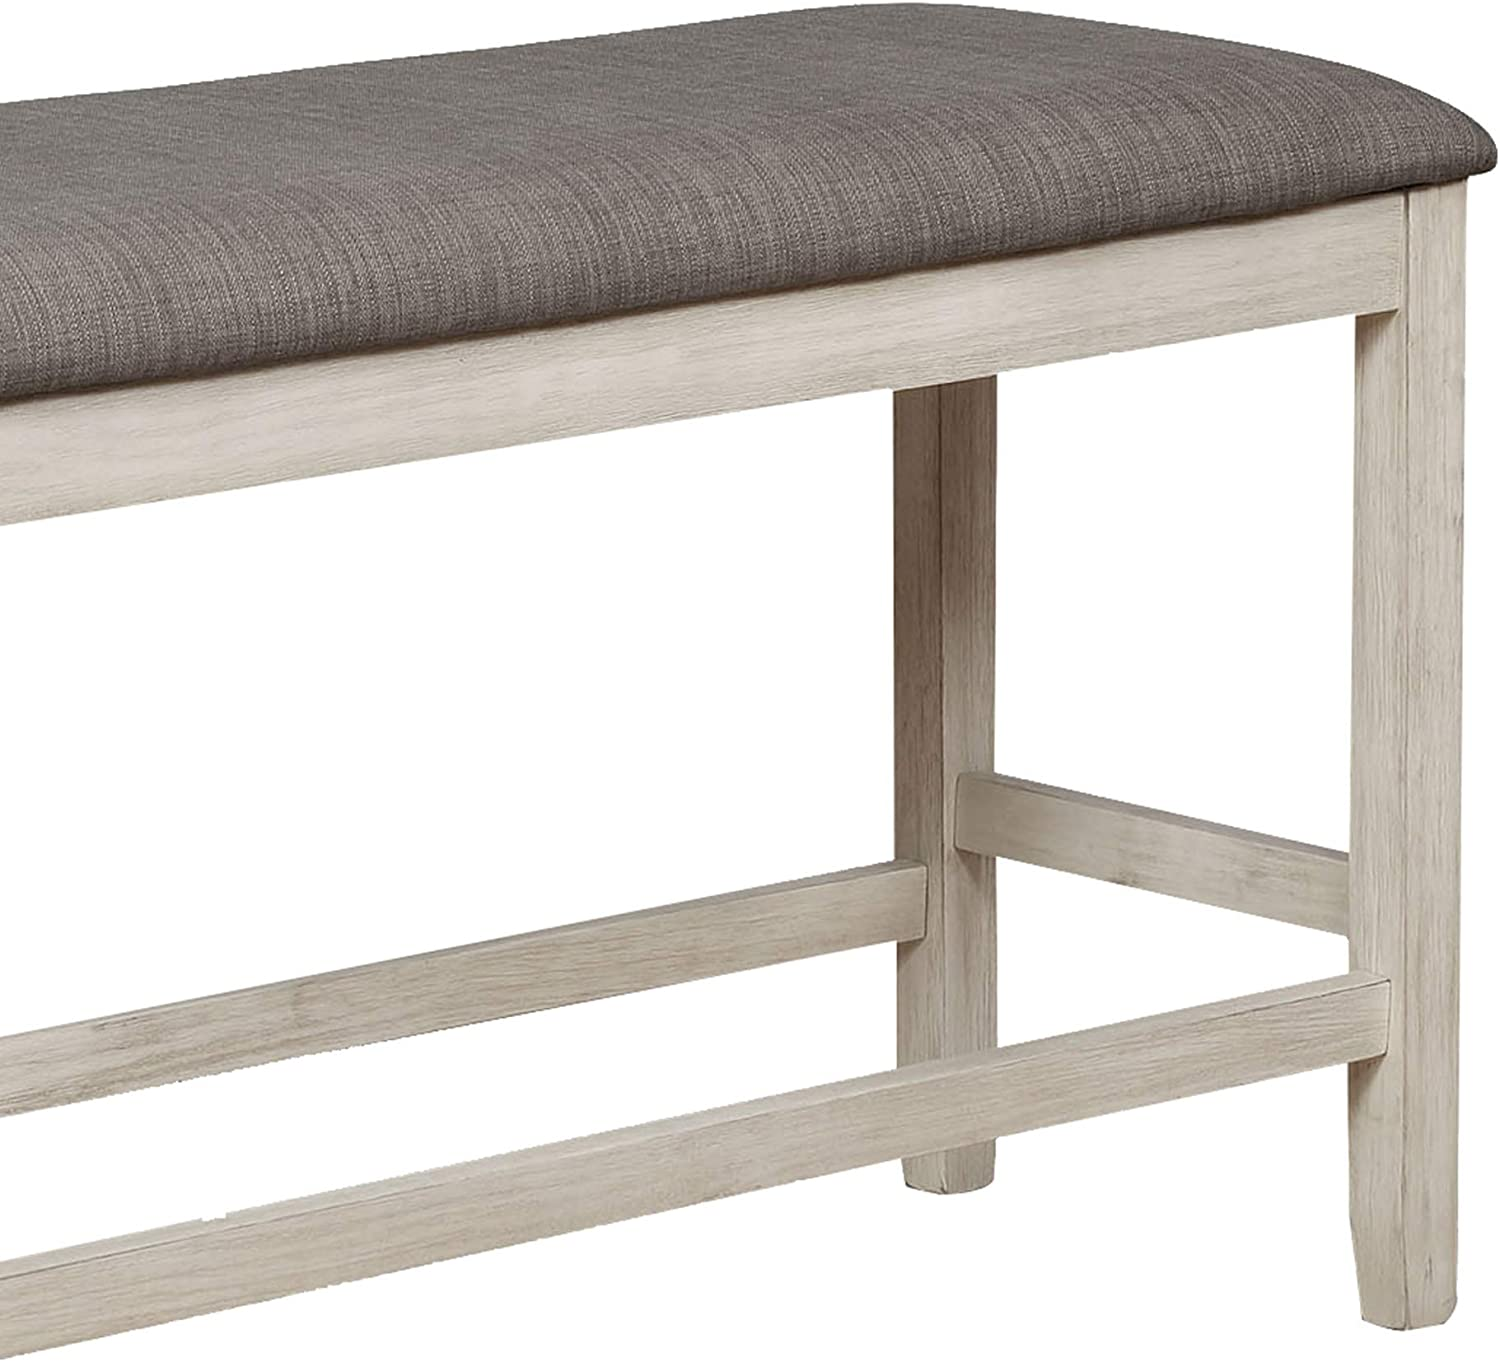 Benjara Counter Height Bench with Fabric Upholstered Seat Beige and Black